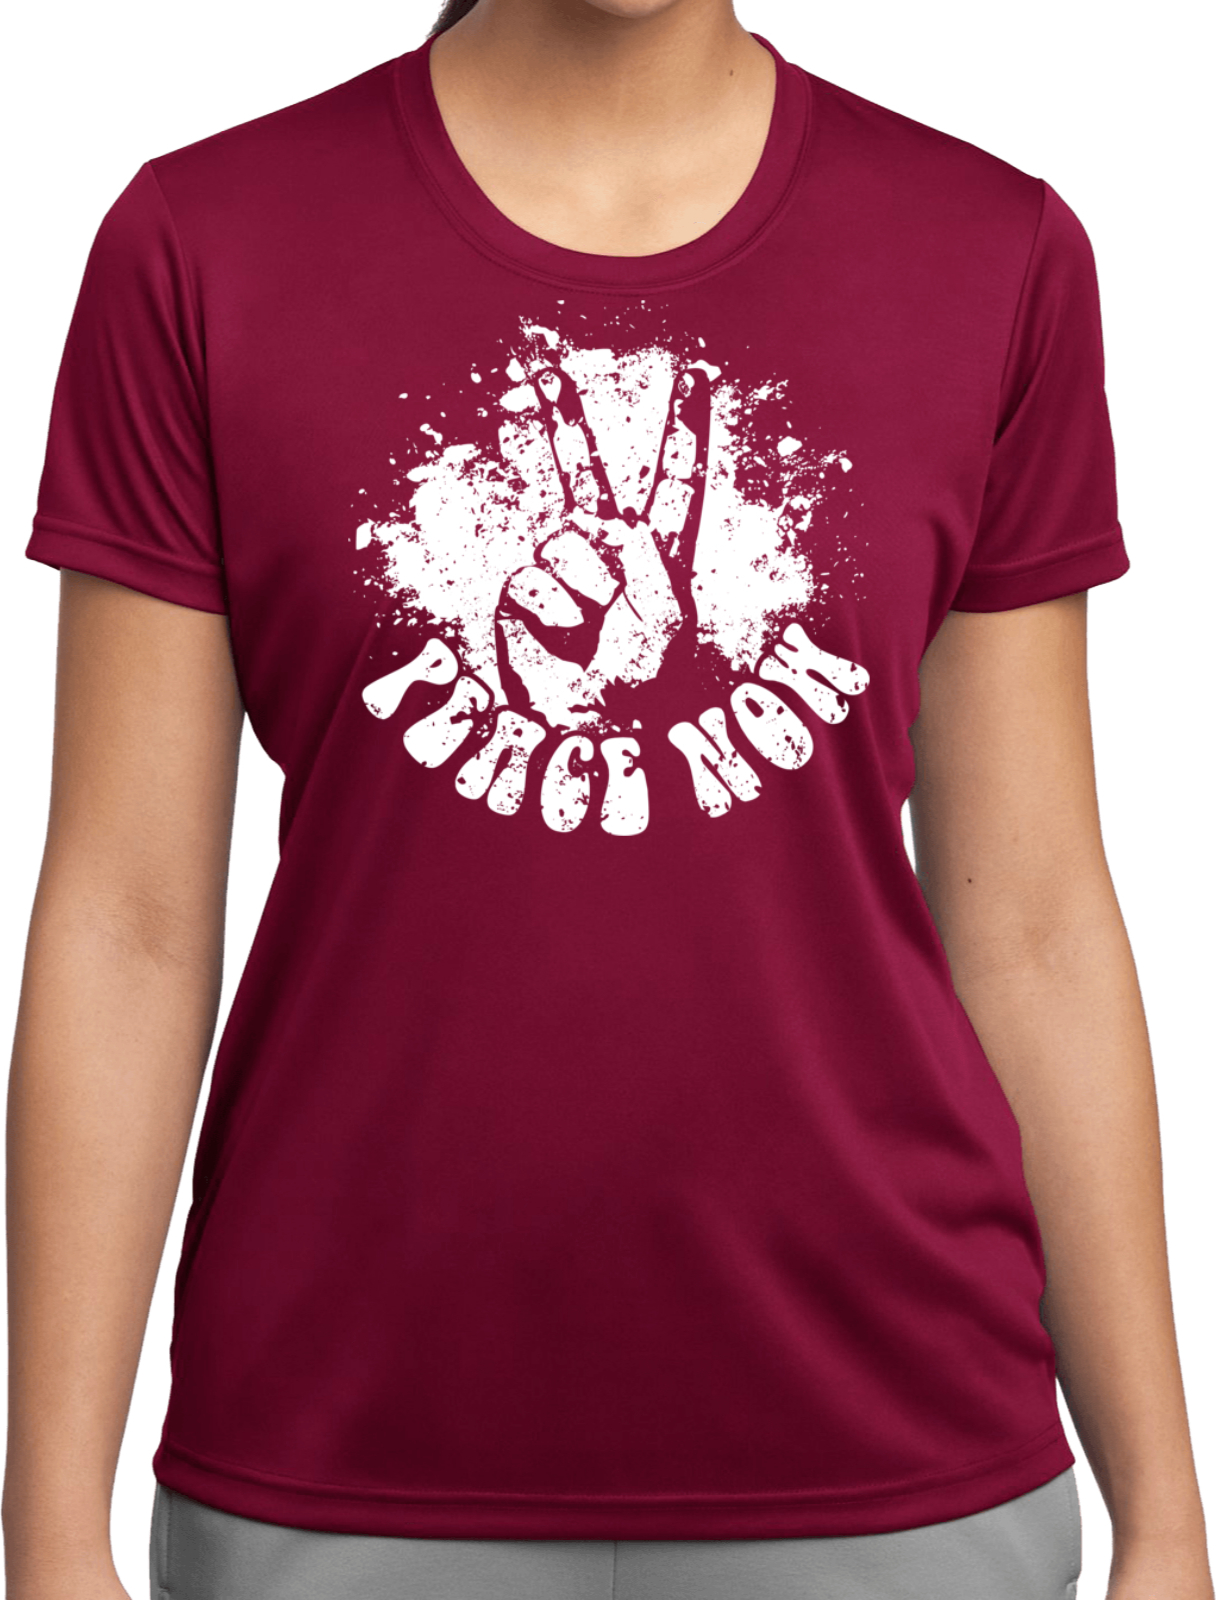 Ladies peace shirt peace now moisture wicking tee t shirt for Sweat wicking t shirts